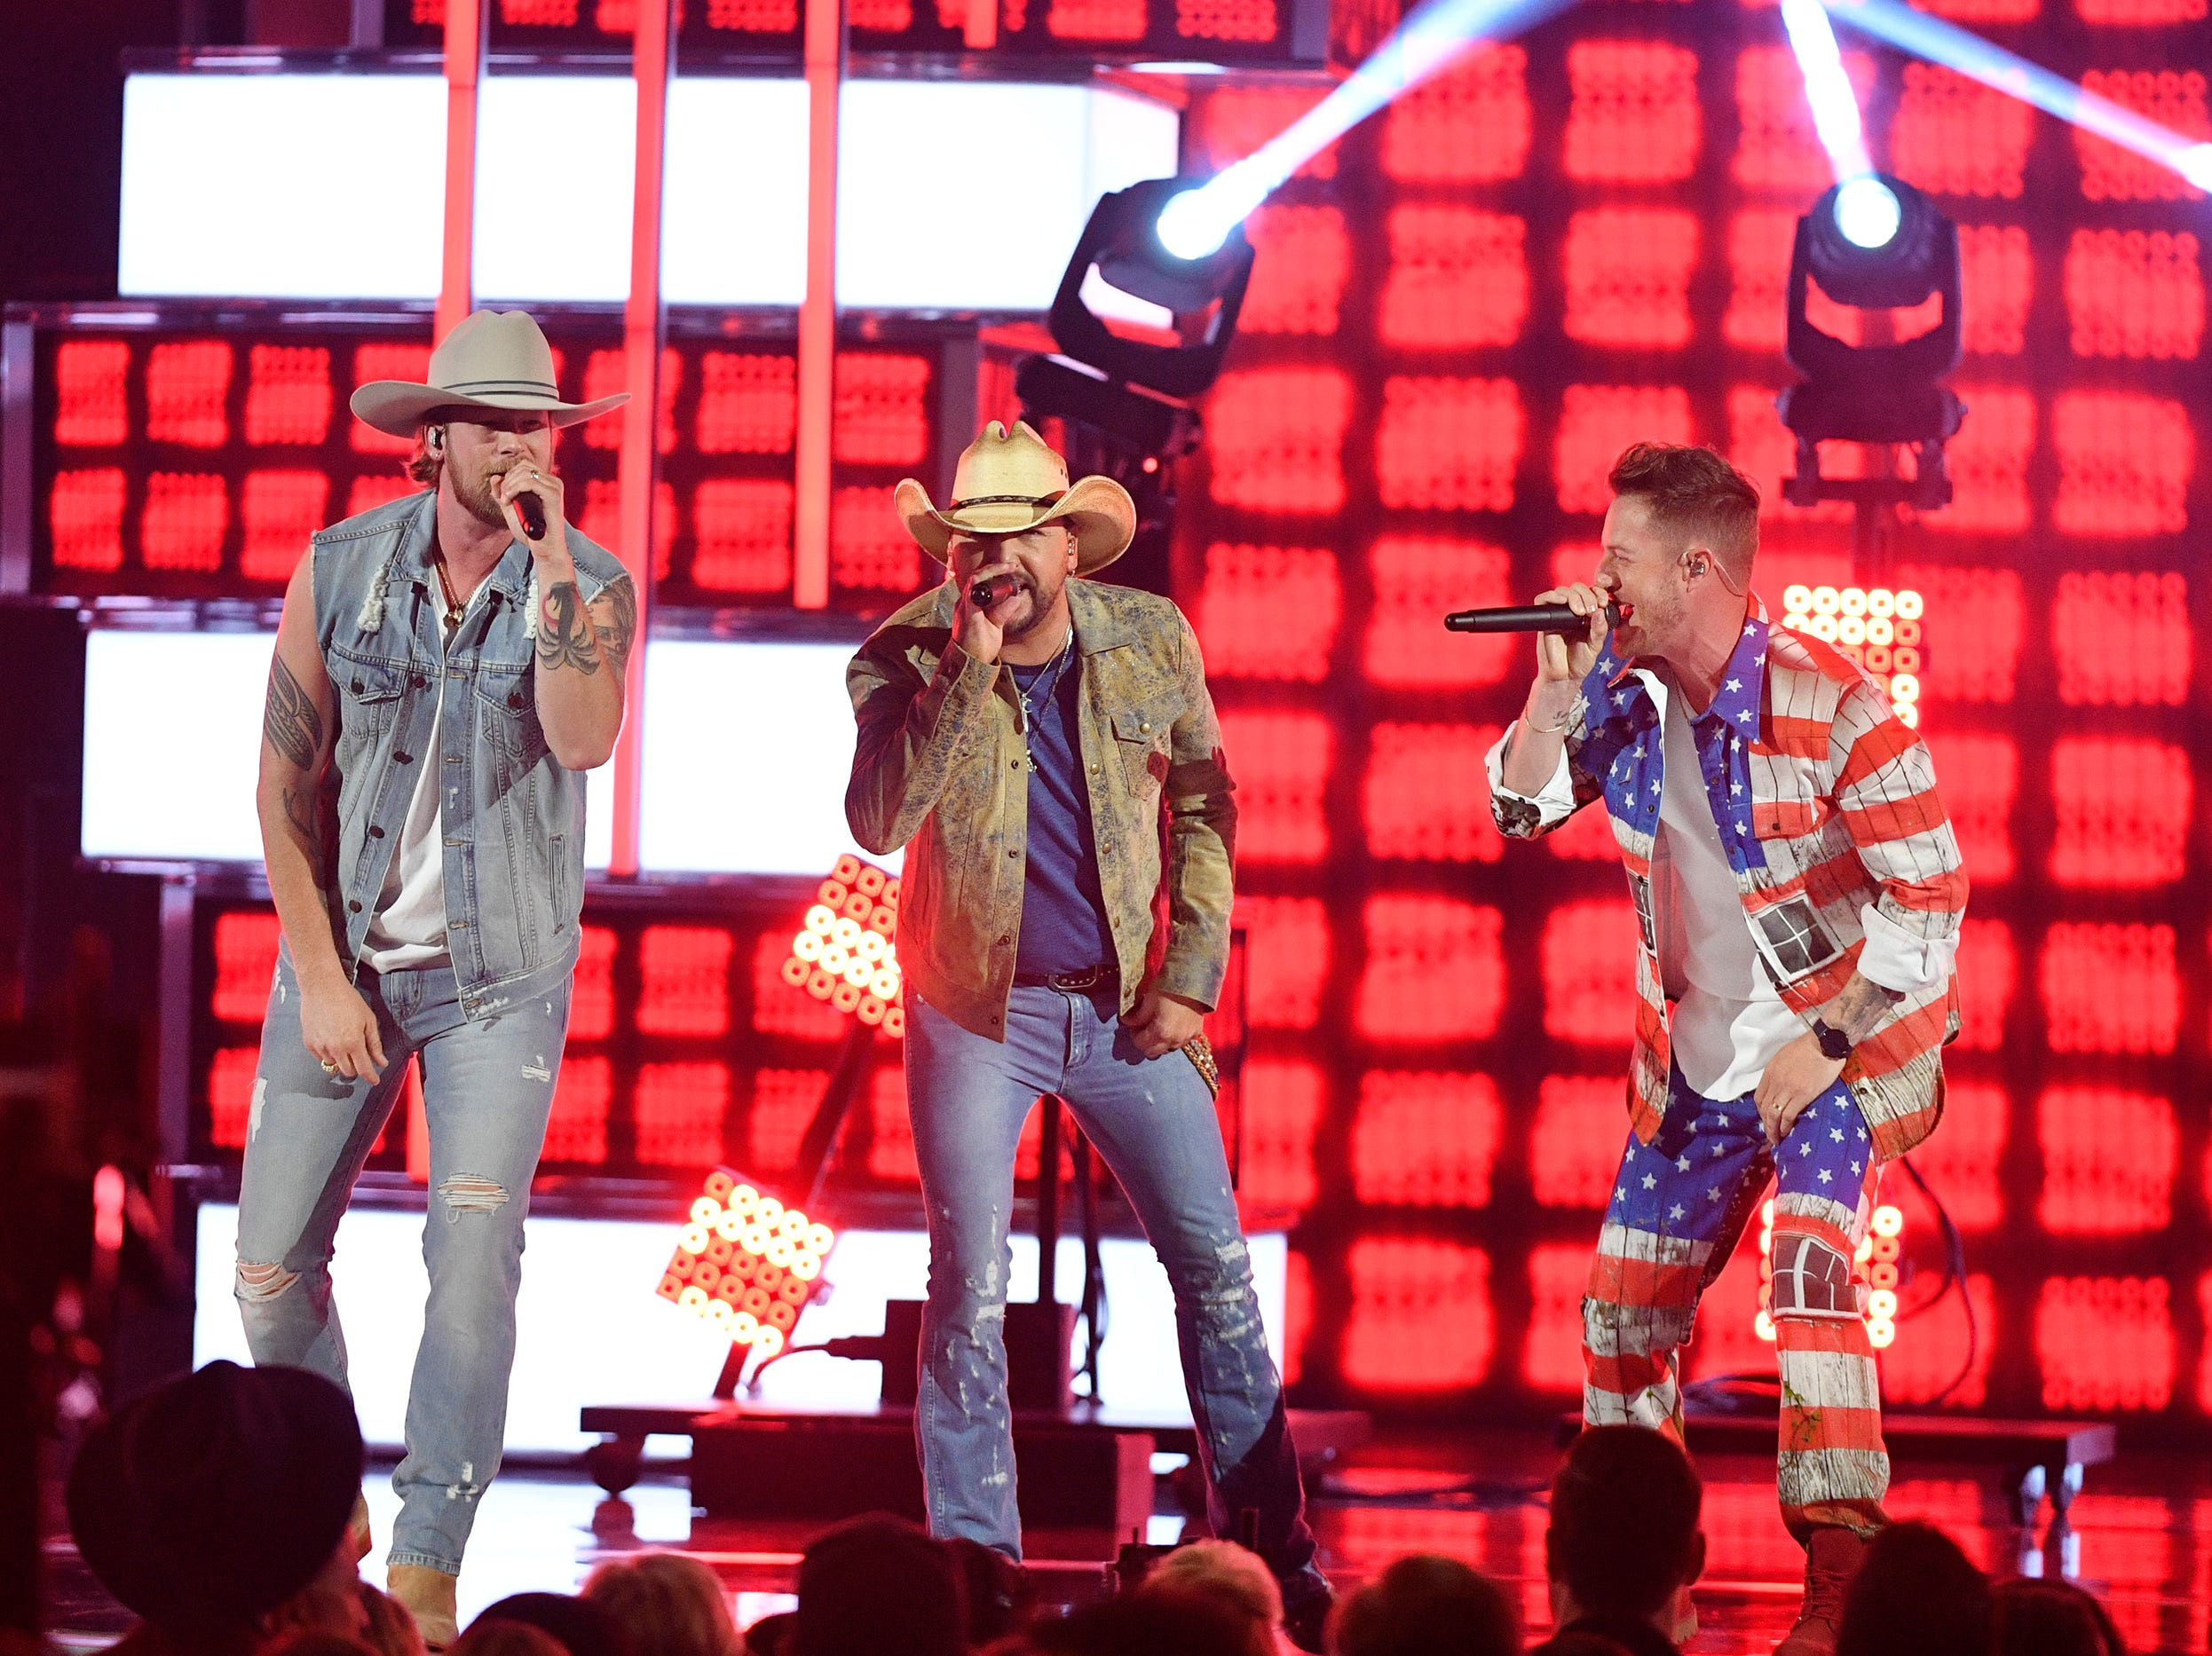 Brian Kelley, from left, Jason Aldean, and Tyler Hubbard, perform during the 54TH Academy of Country Music Awards Sunday, April 7, 2019, in Las Vegas, Nev.